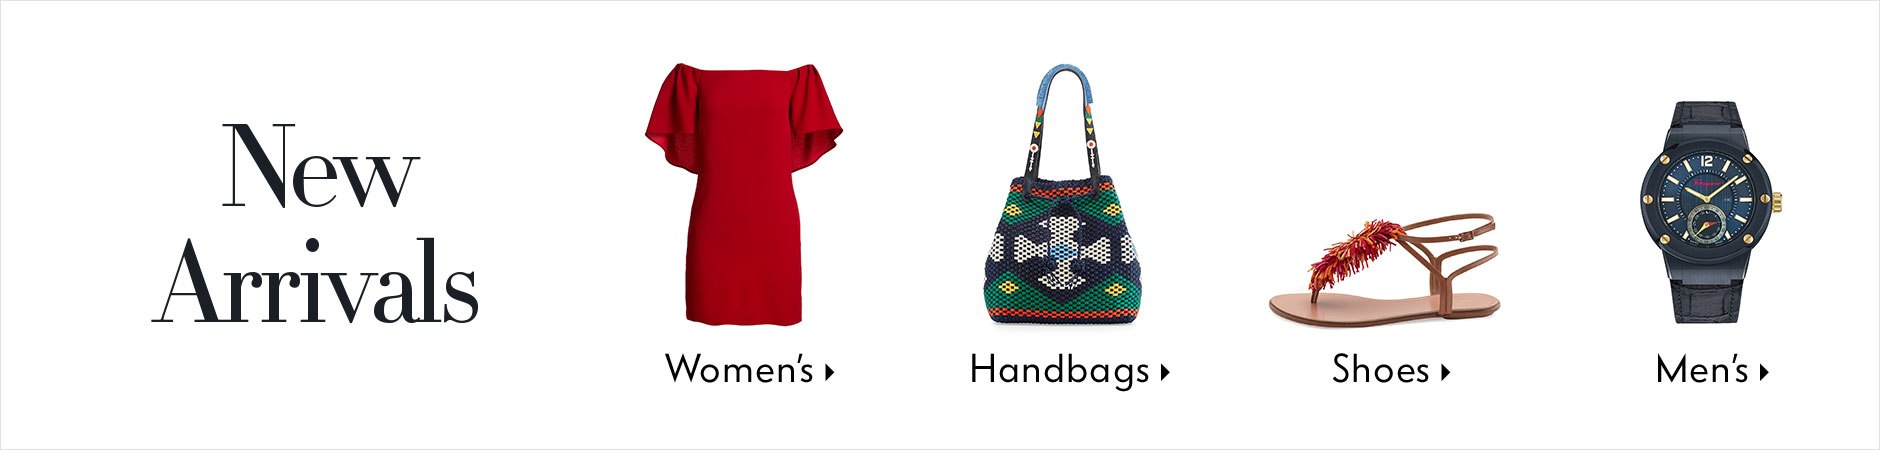 New Arrivals - Women's, Handbags, Shoes, Men's